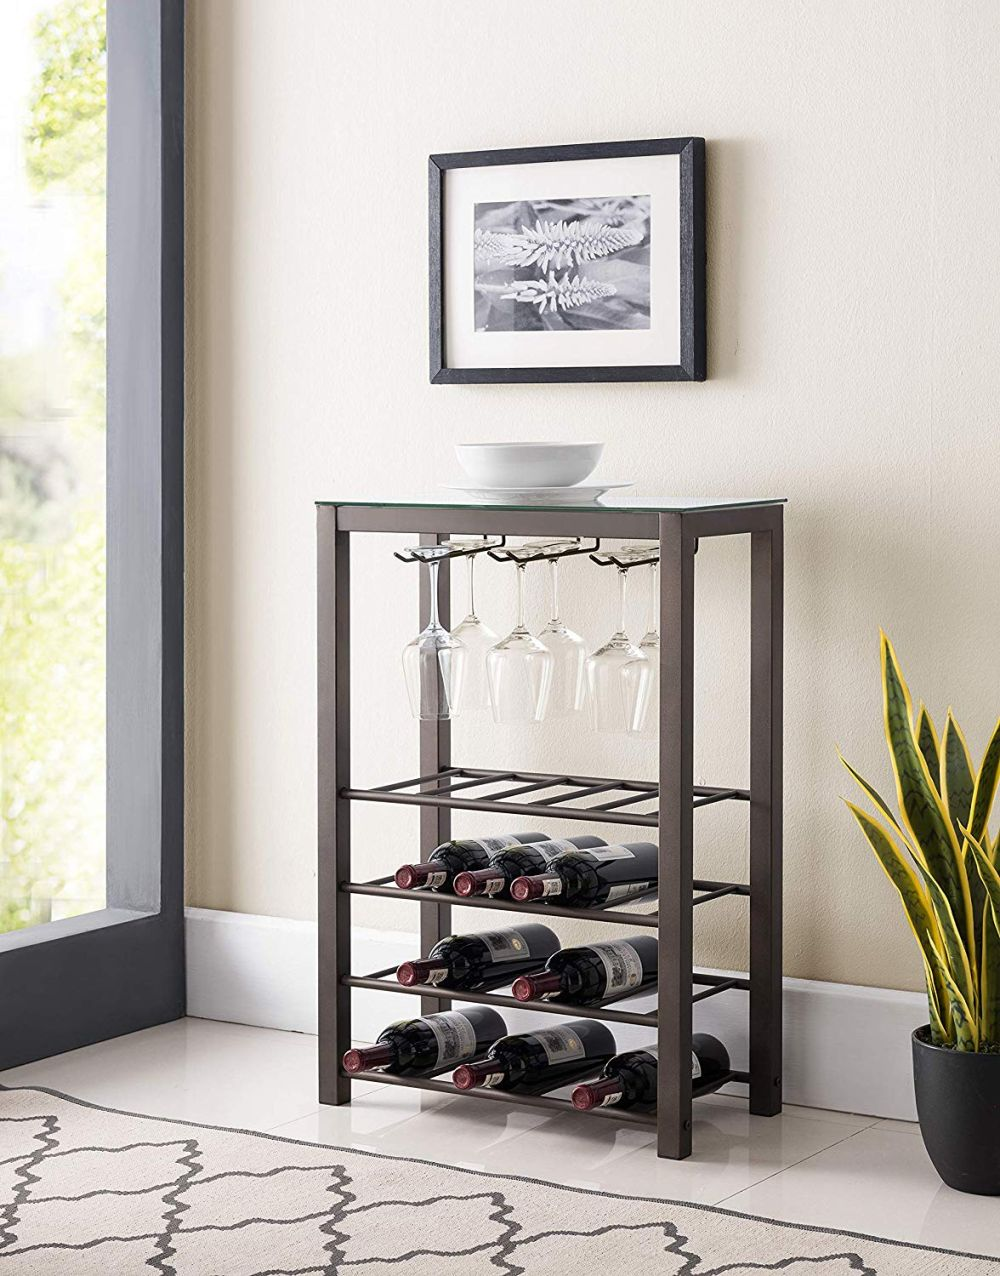 1570466149 312 the best wine rack tables for small and quirky spaces - The Best Wine Rack Tables for Small And Quirky Spaces